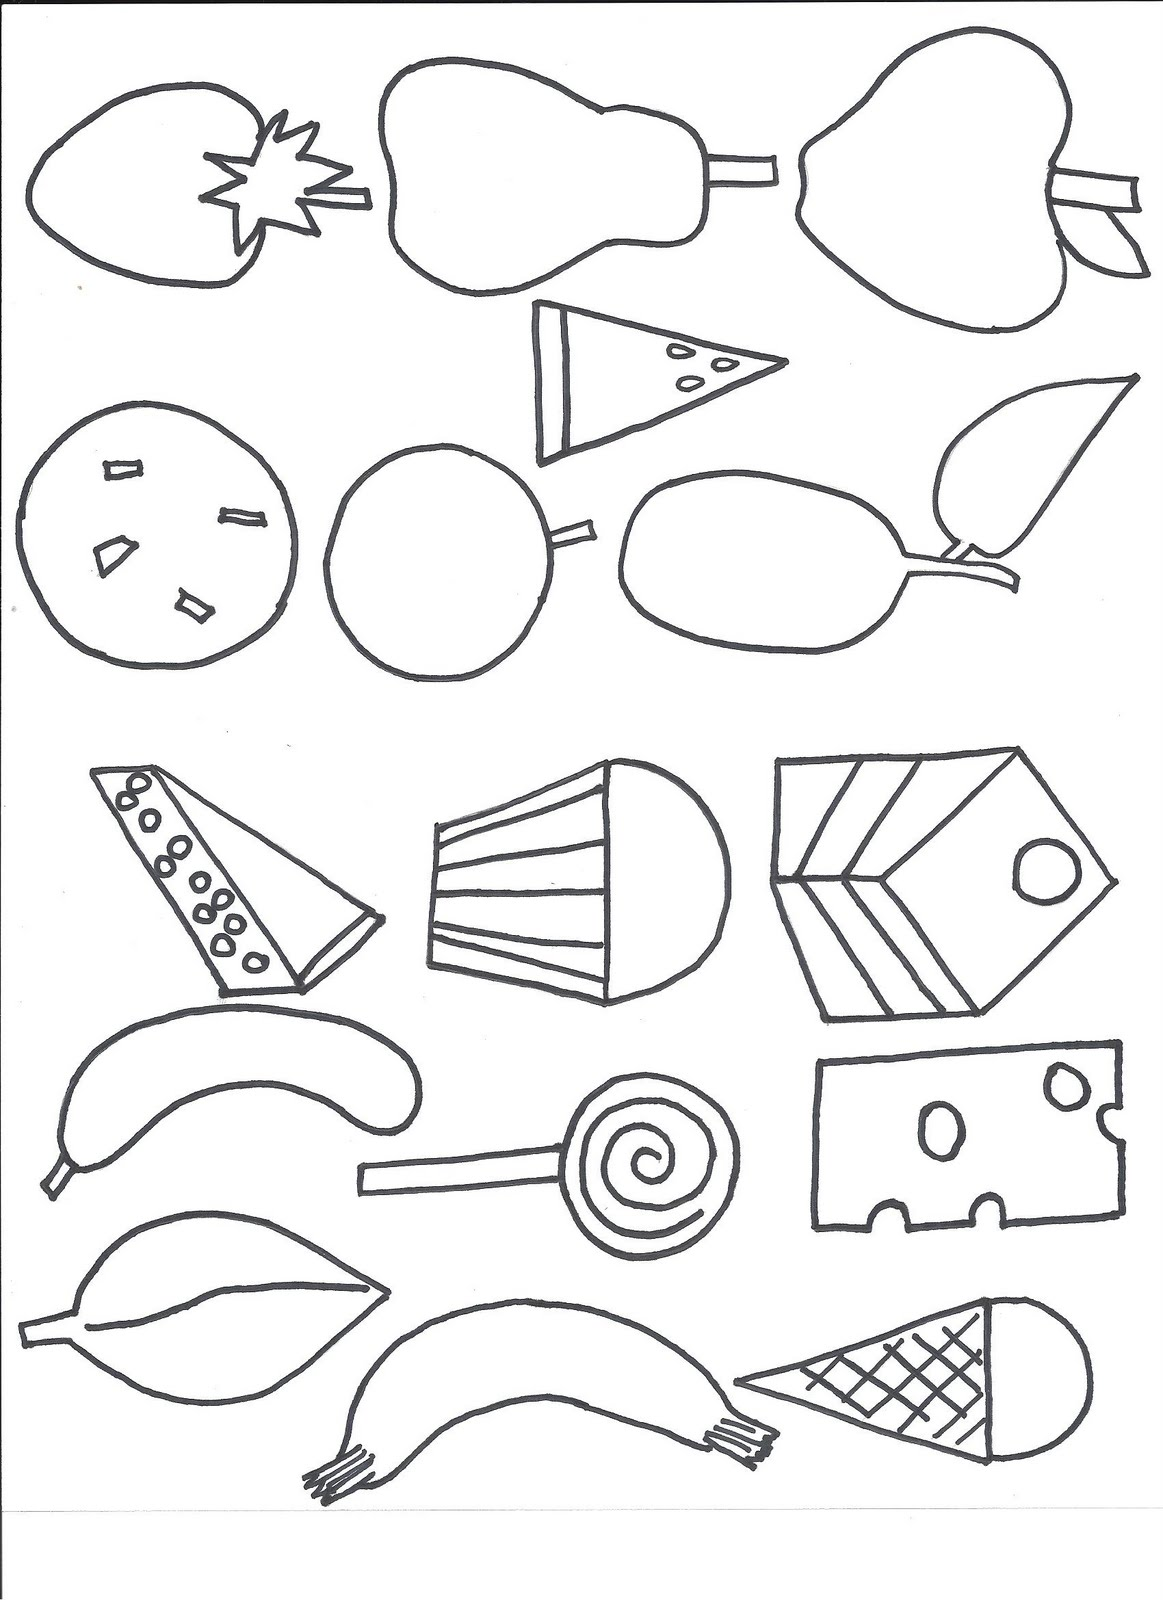 The Hungry Caterpillar Coloring Pages At Getdrawings Com Free For